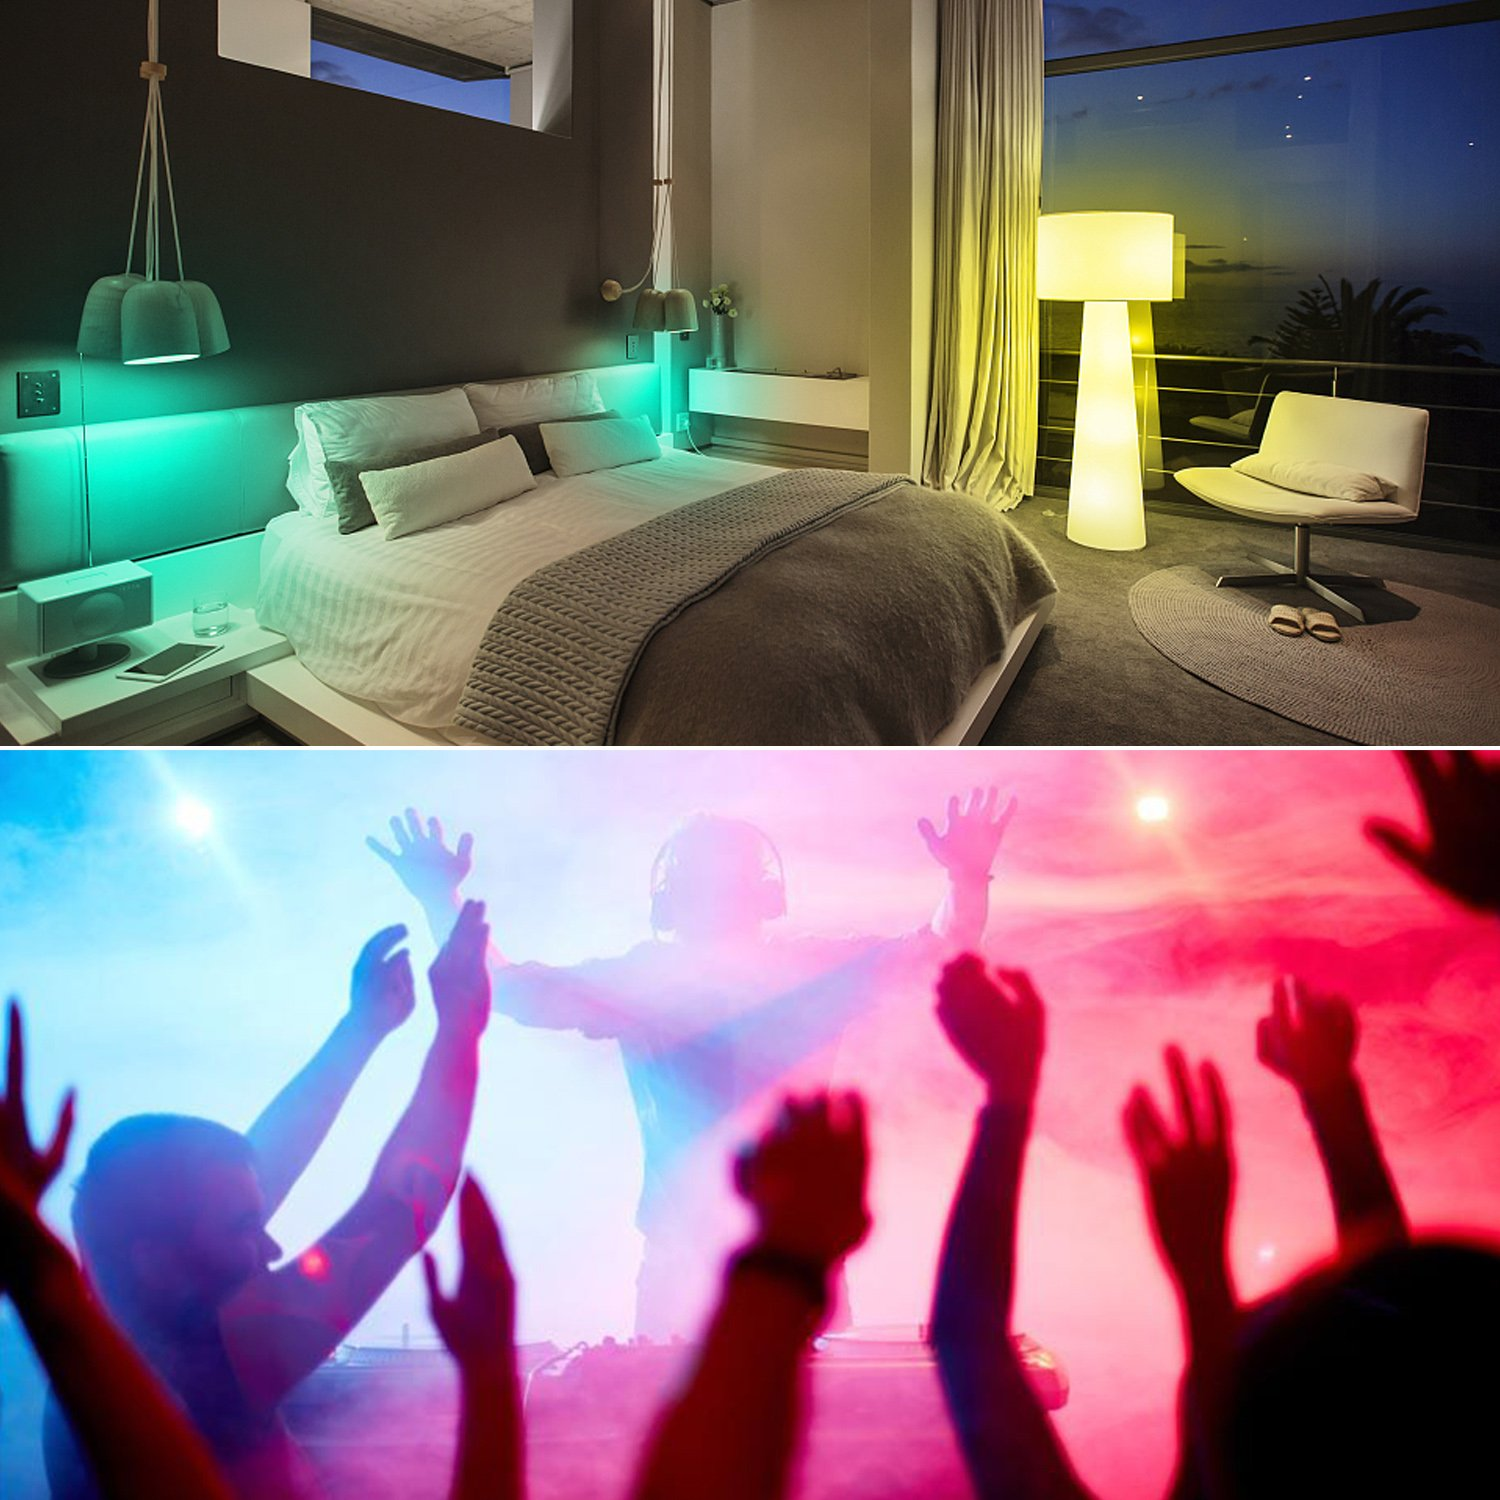 Pack of 4 3W Edison Screw RGBW Bulb,12 Colors Changing with IR Remote Control,Disco Party Home Mood Ambiance Lighting NetBoat Colour Changing Lights,RGB Daylight White E27 Coloured Light Bulbs